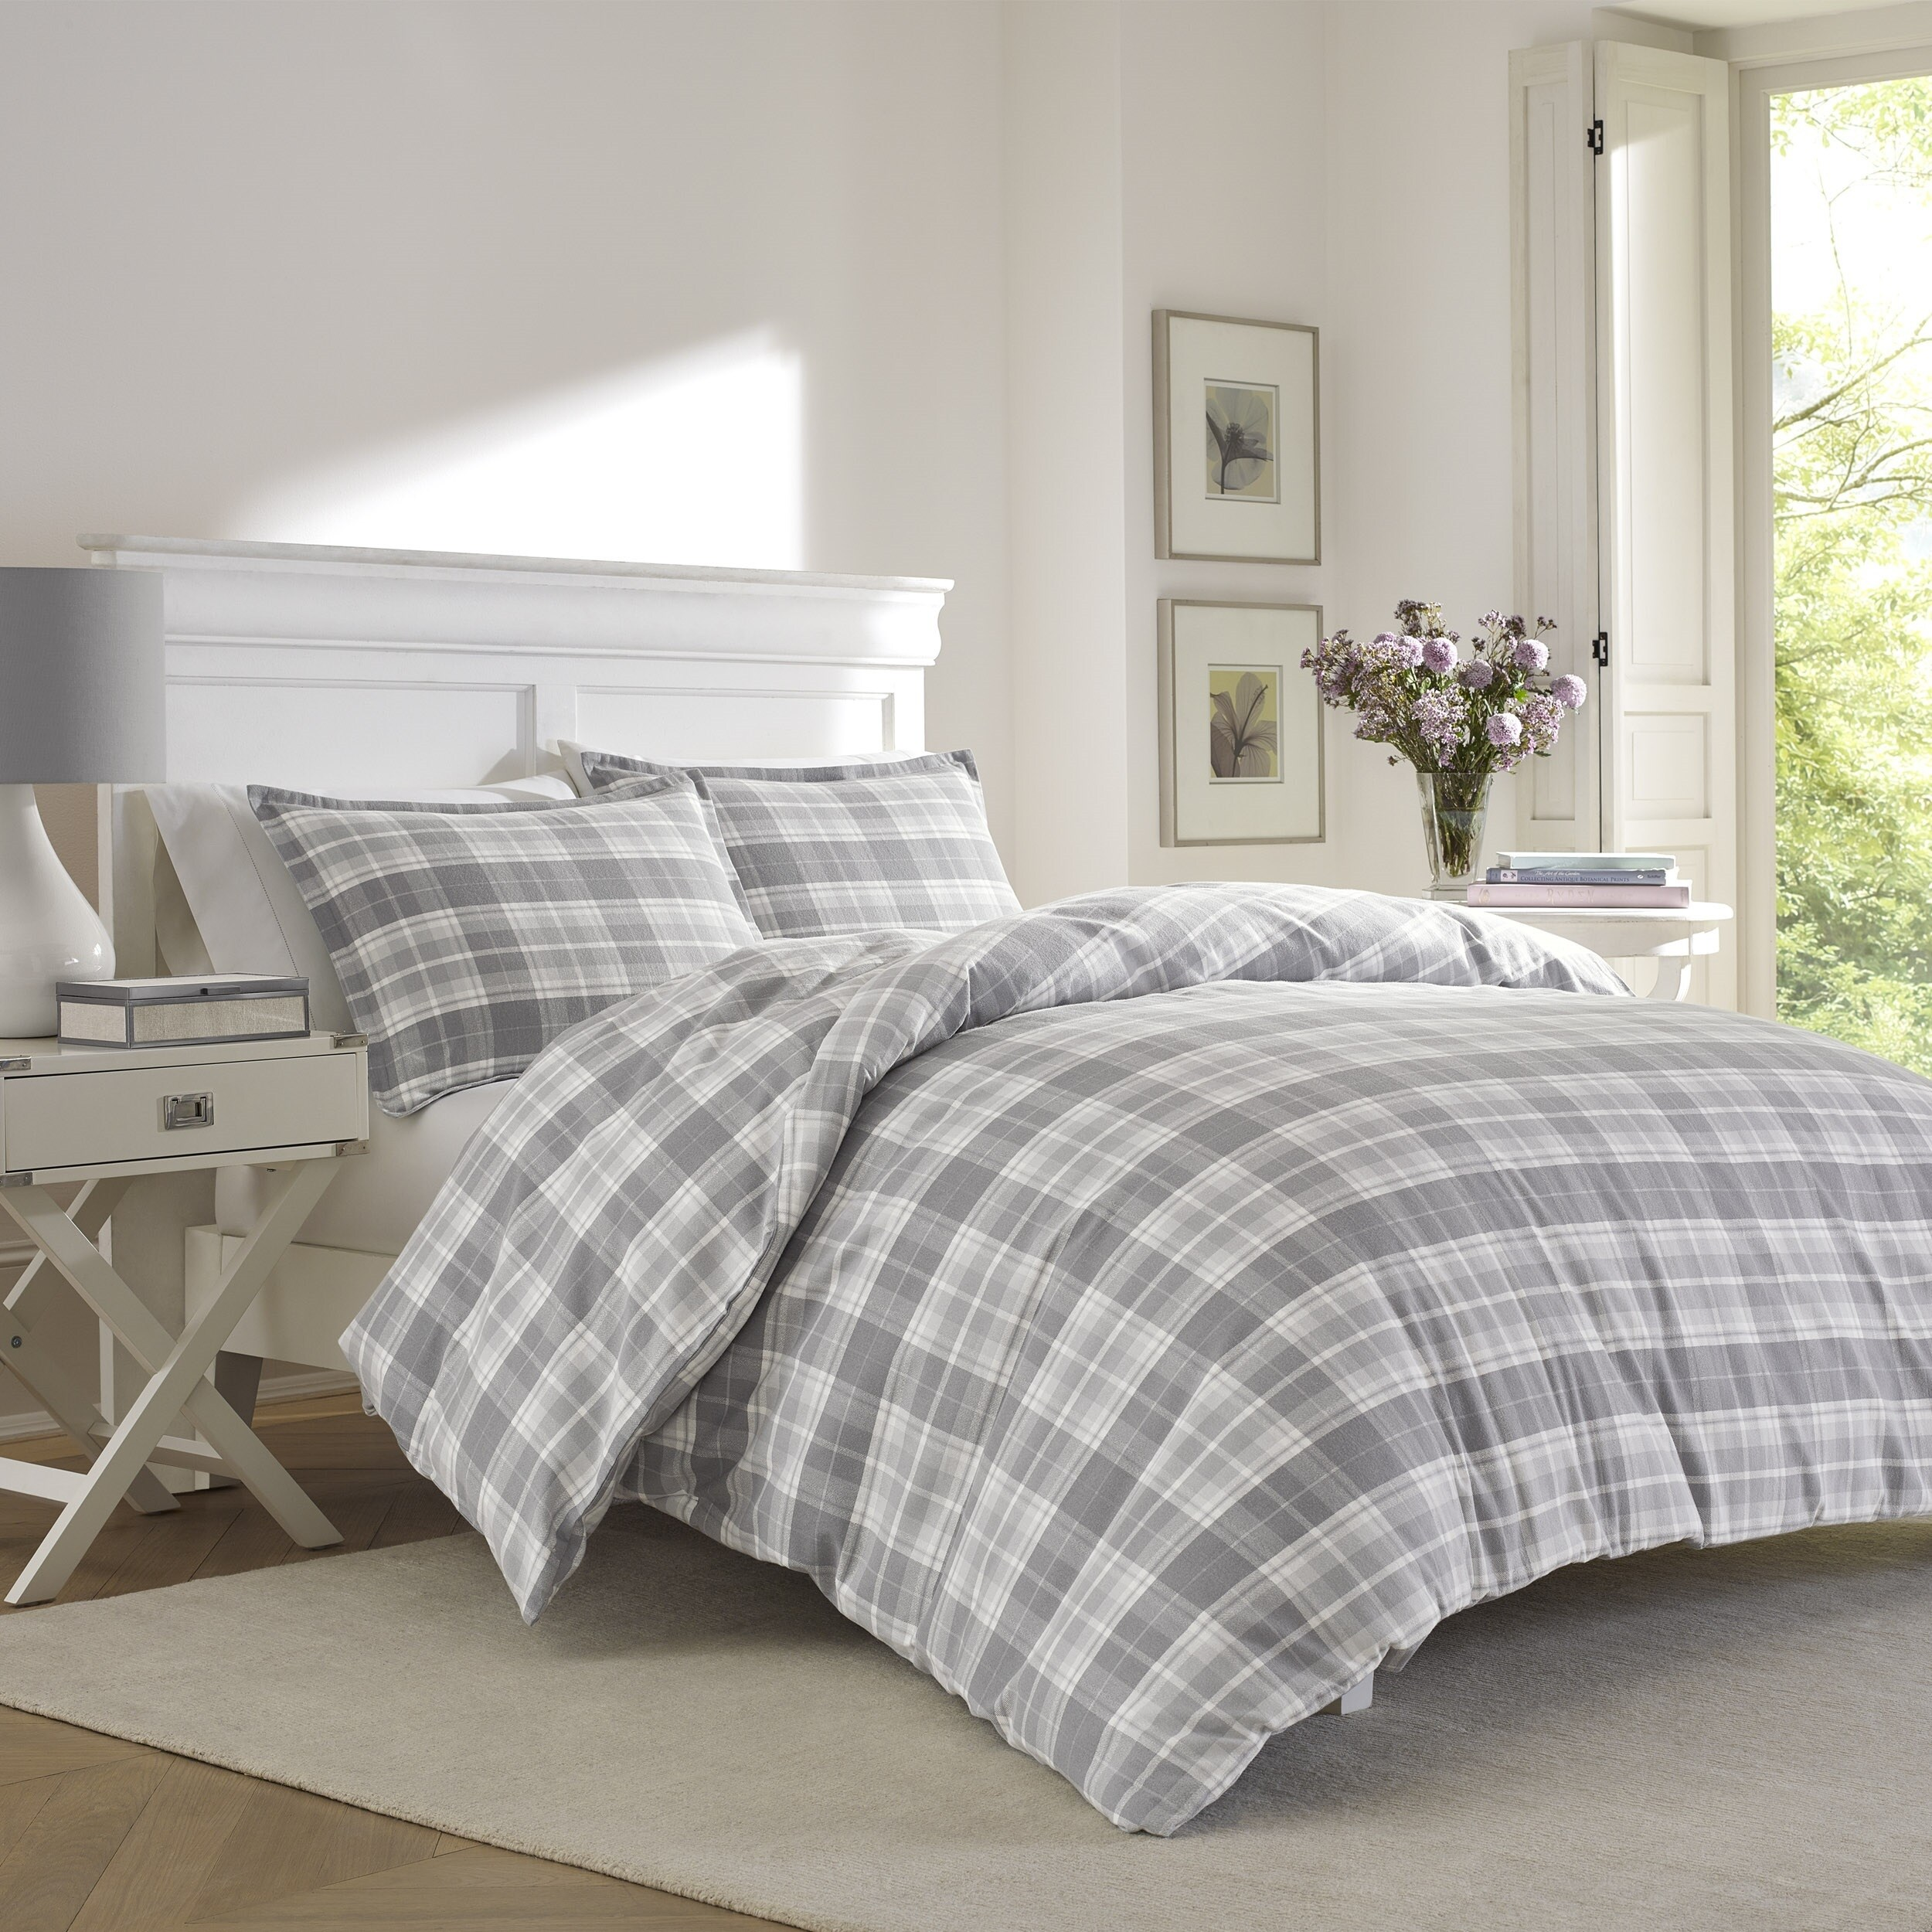 green home shop the office packers sham plaid comforter pro and at set bedroom bay